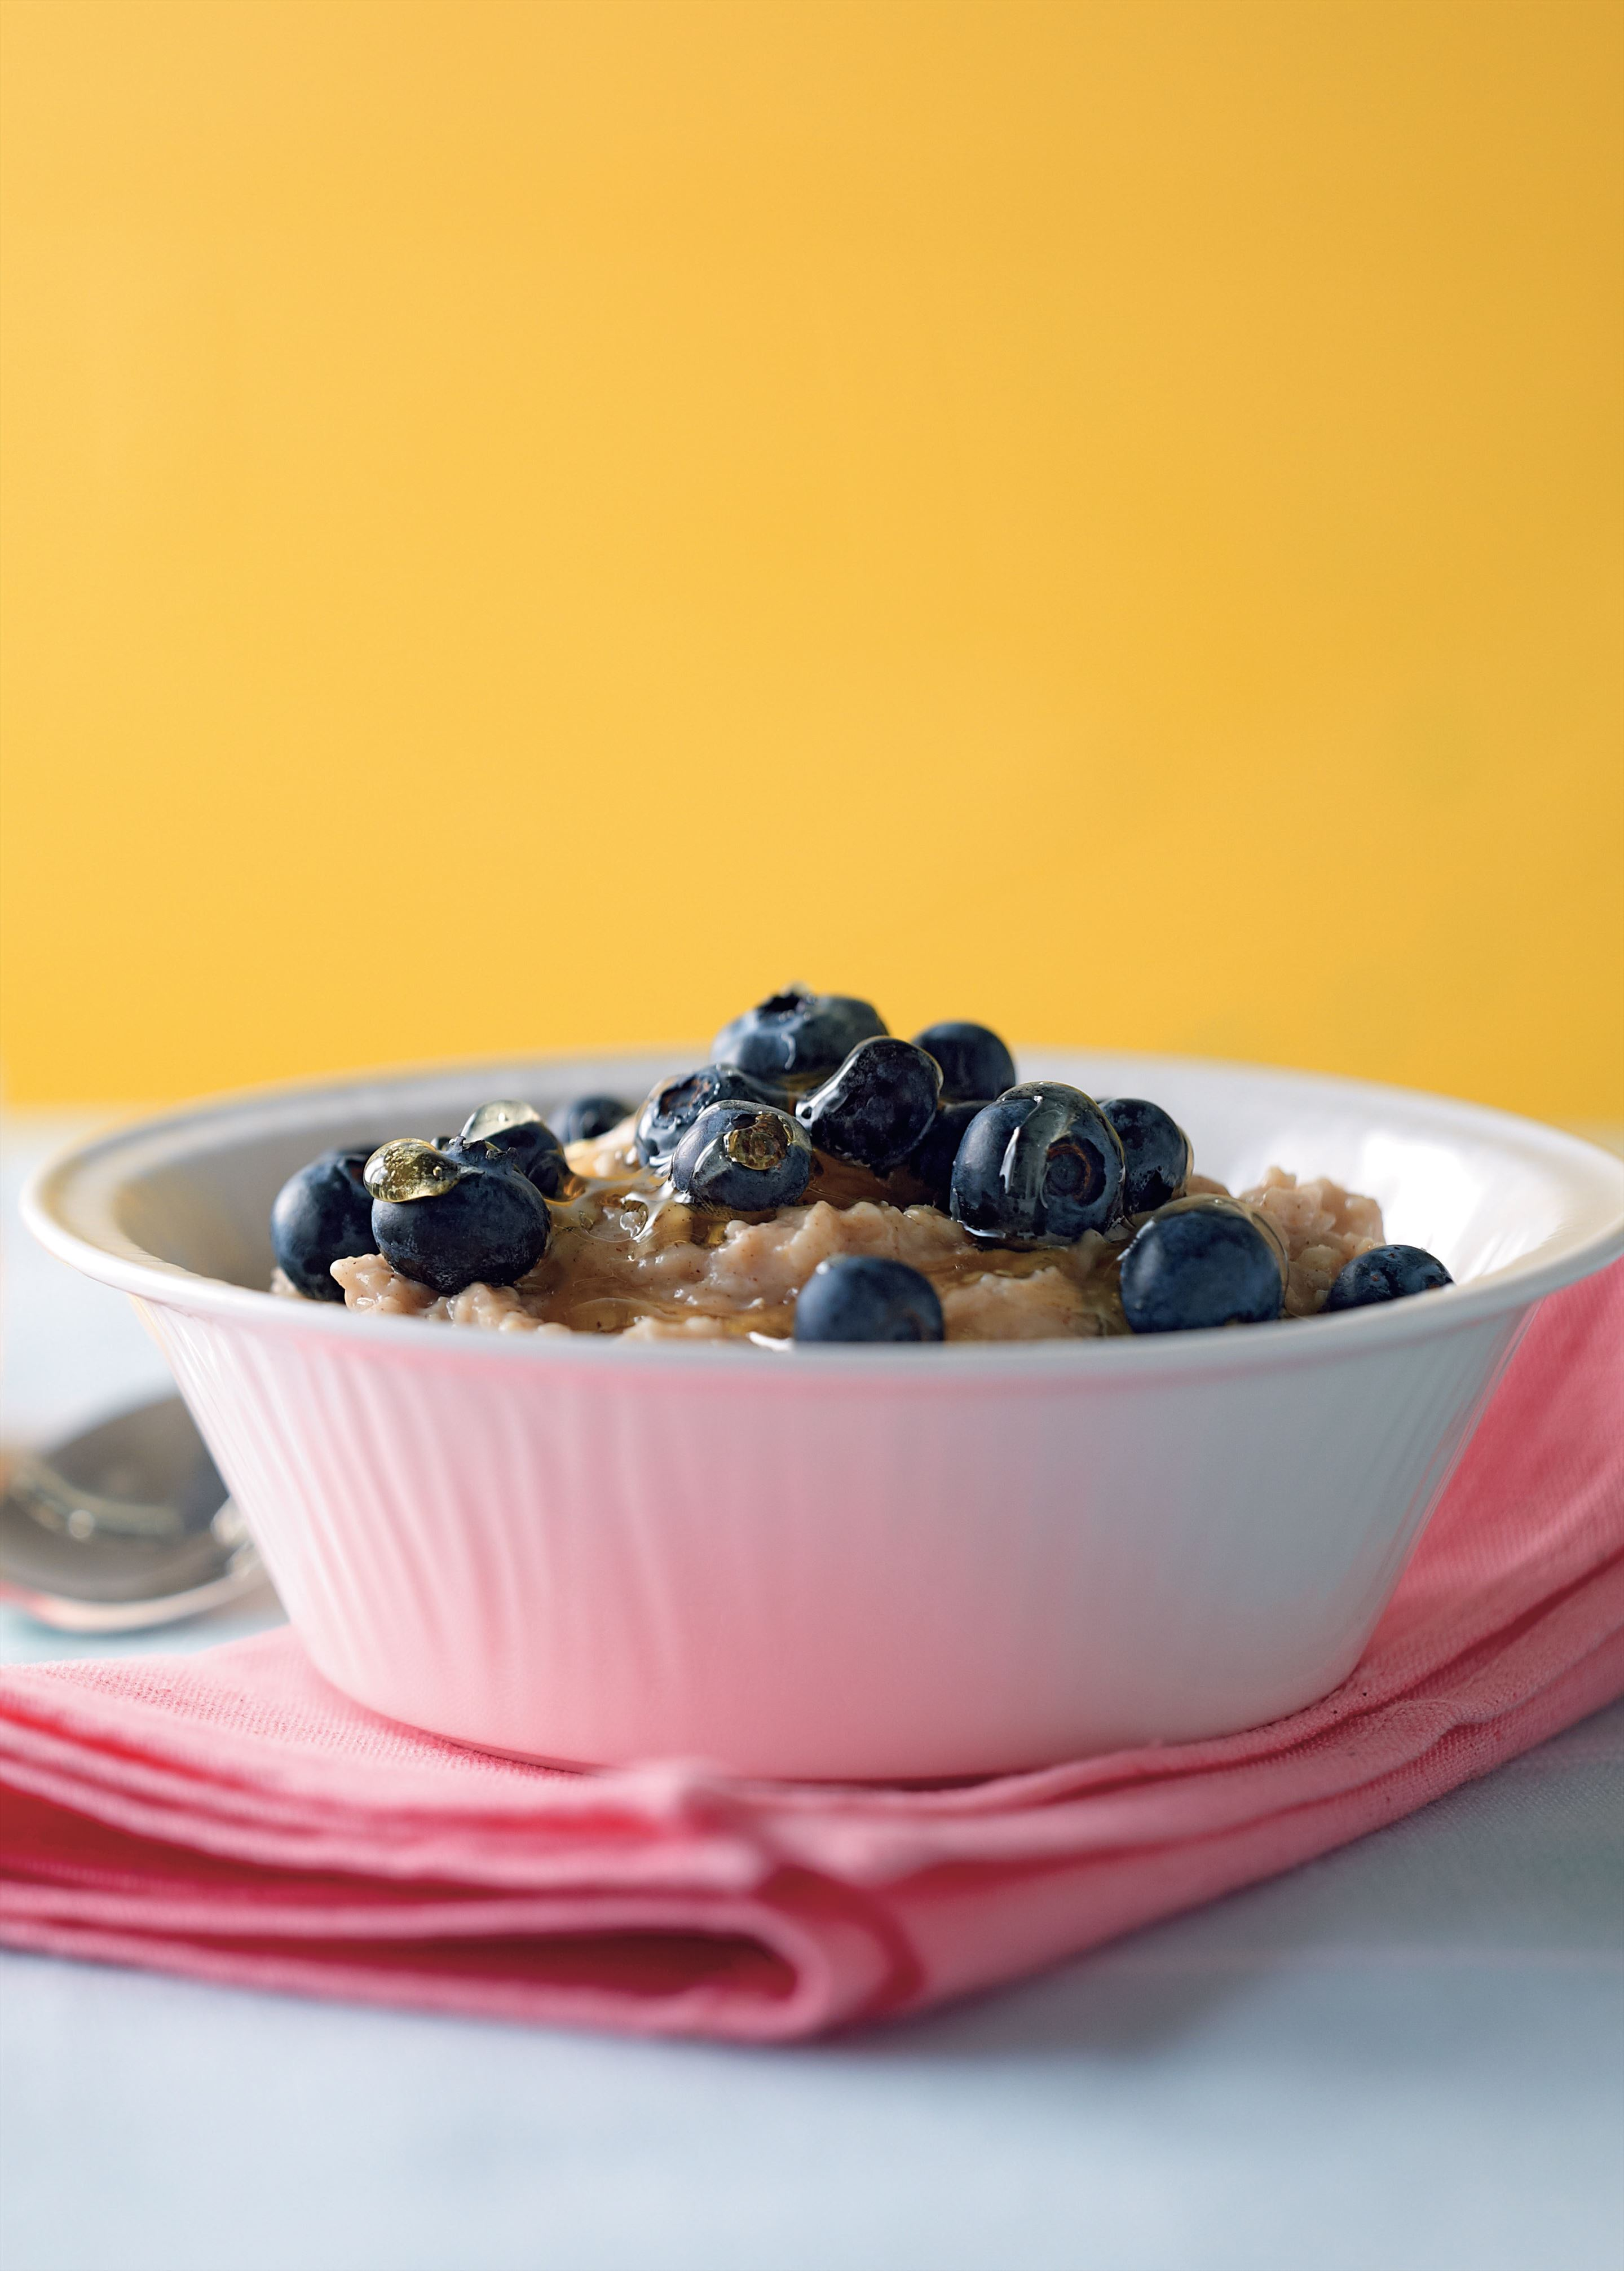 Cinnamon porridge with blueberries and honey